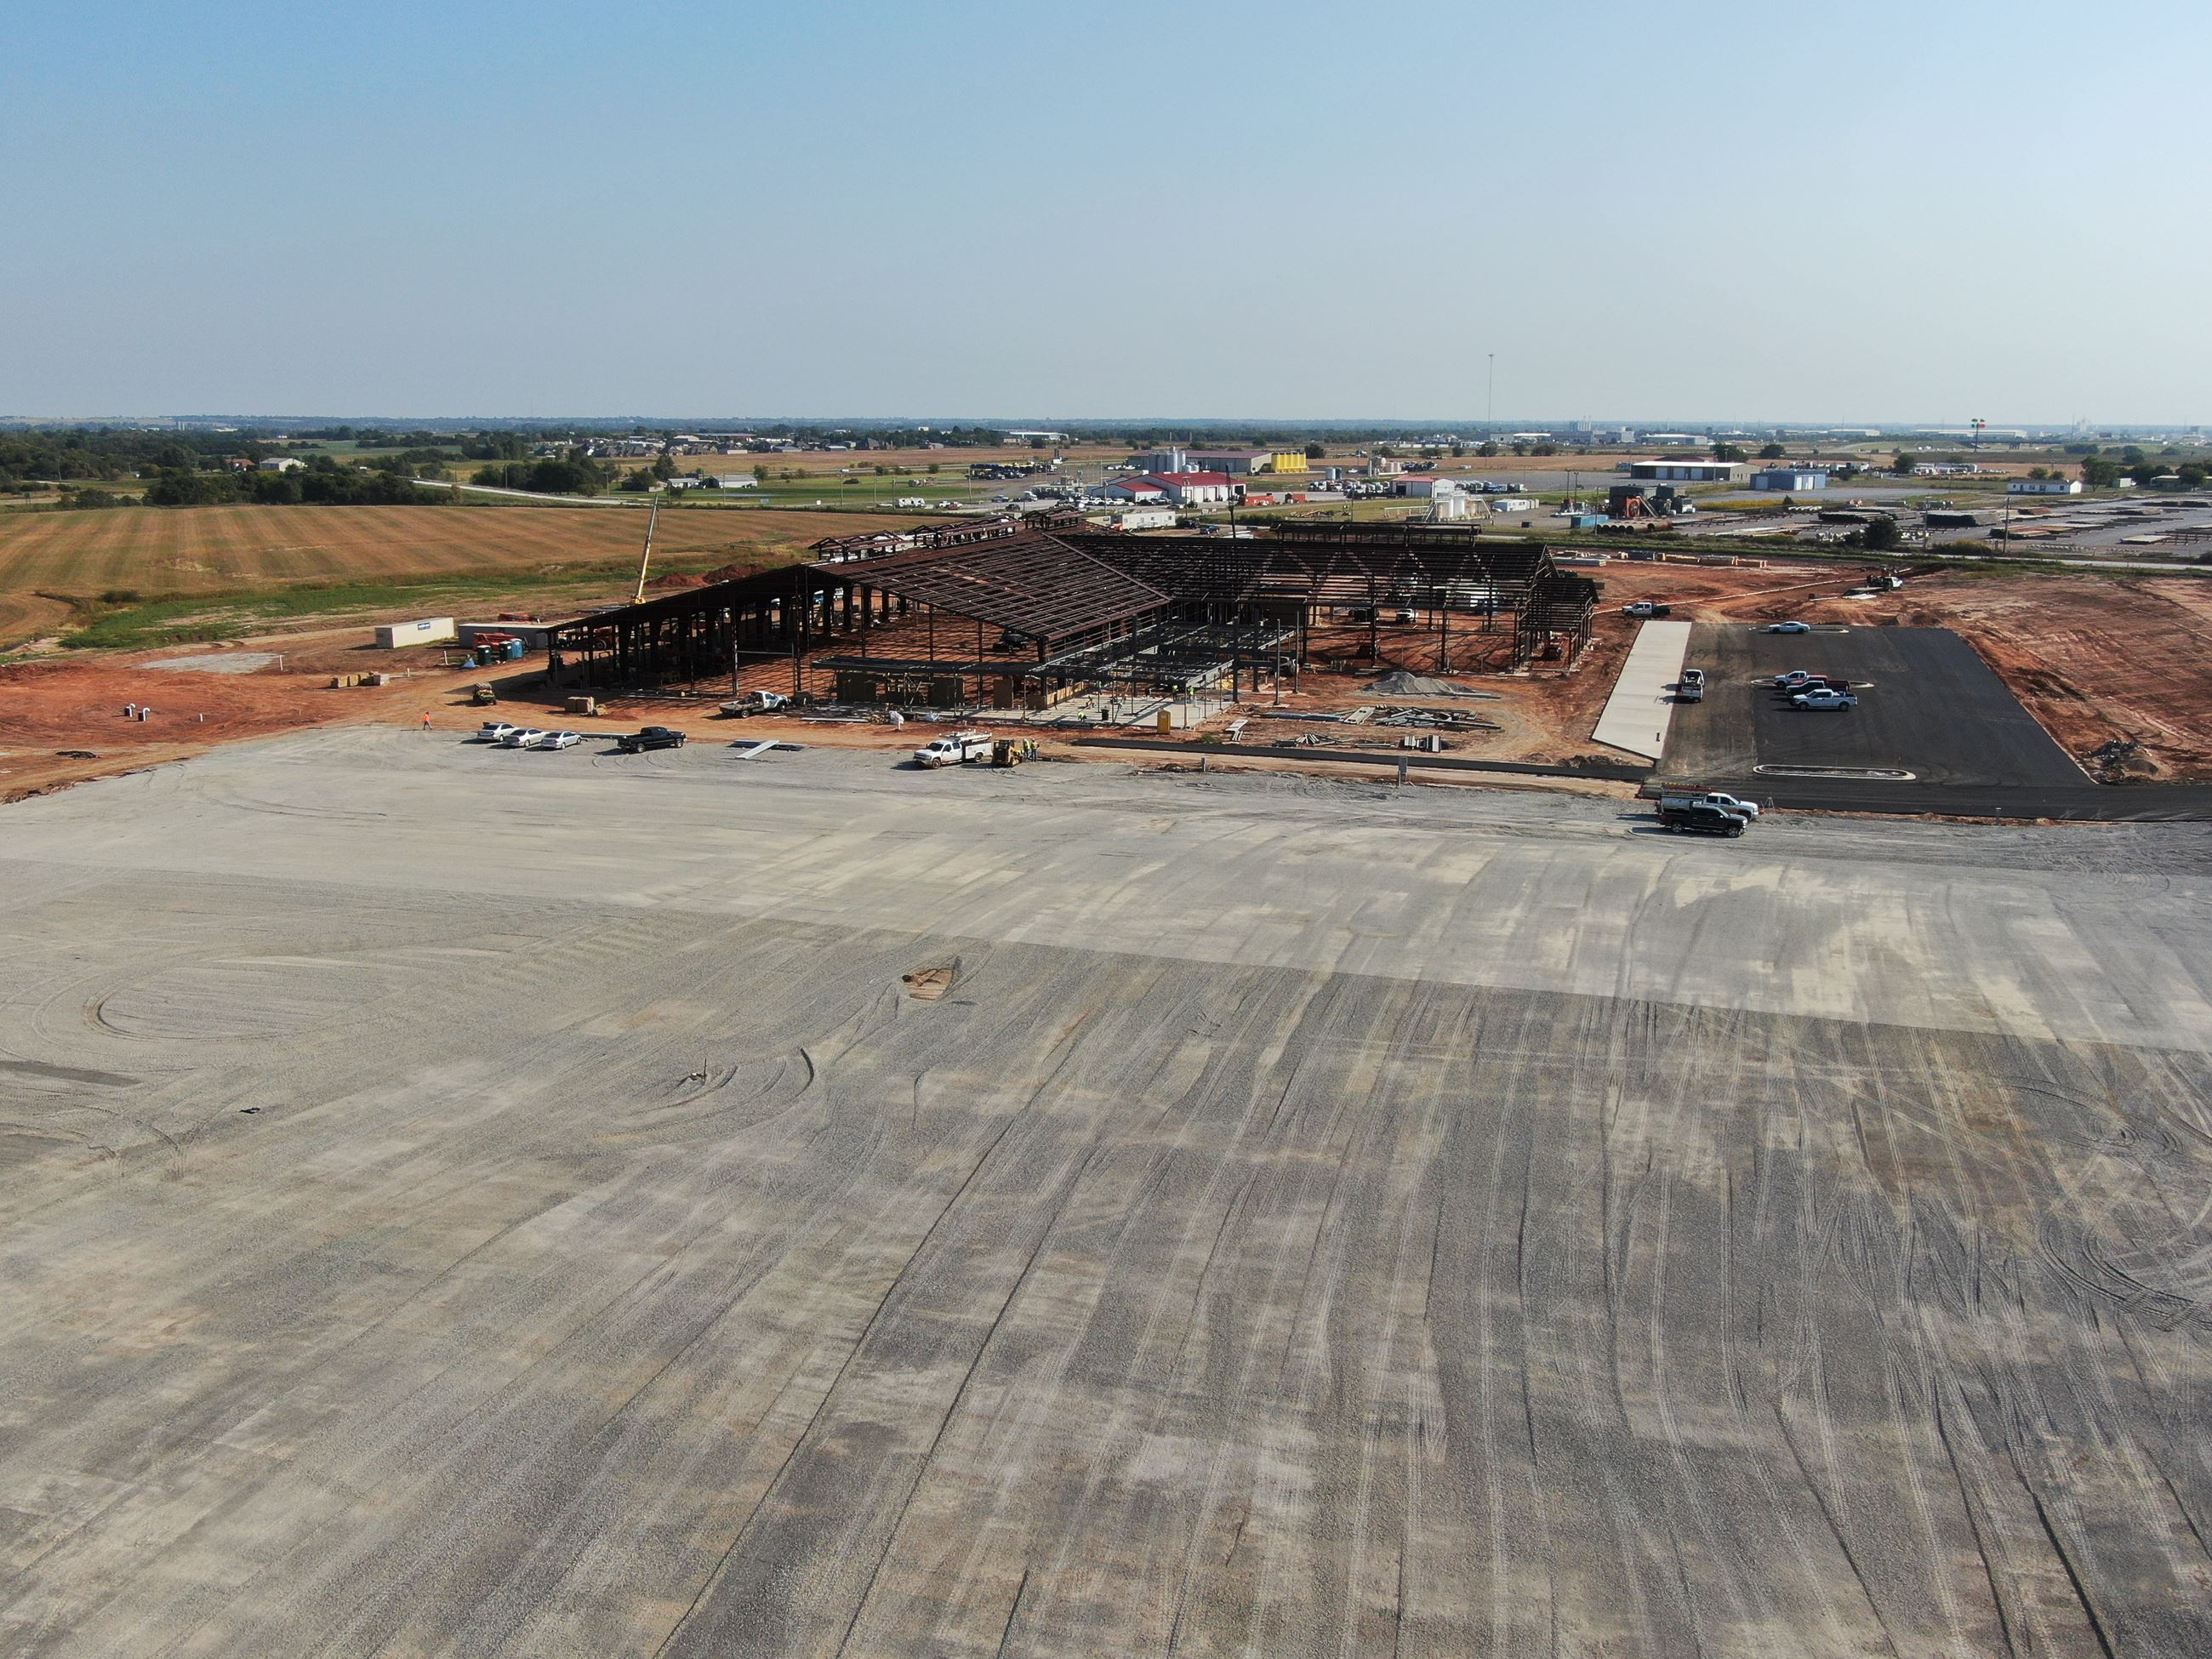 Drone shot looking North East over future vendor parking, which has been graveled in this picture.